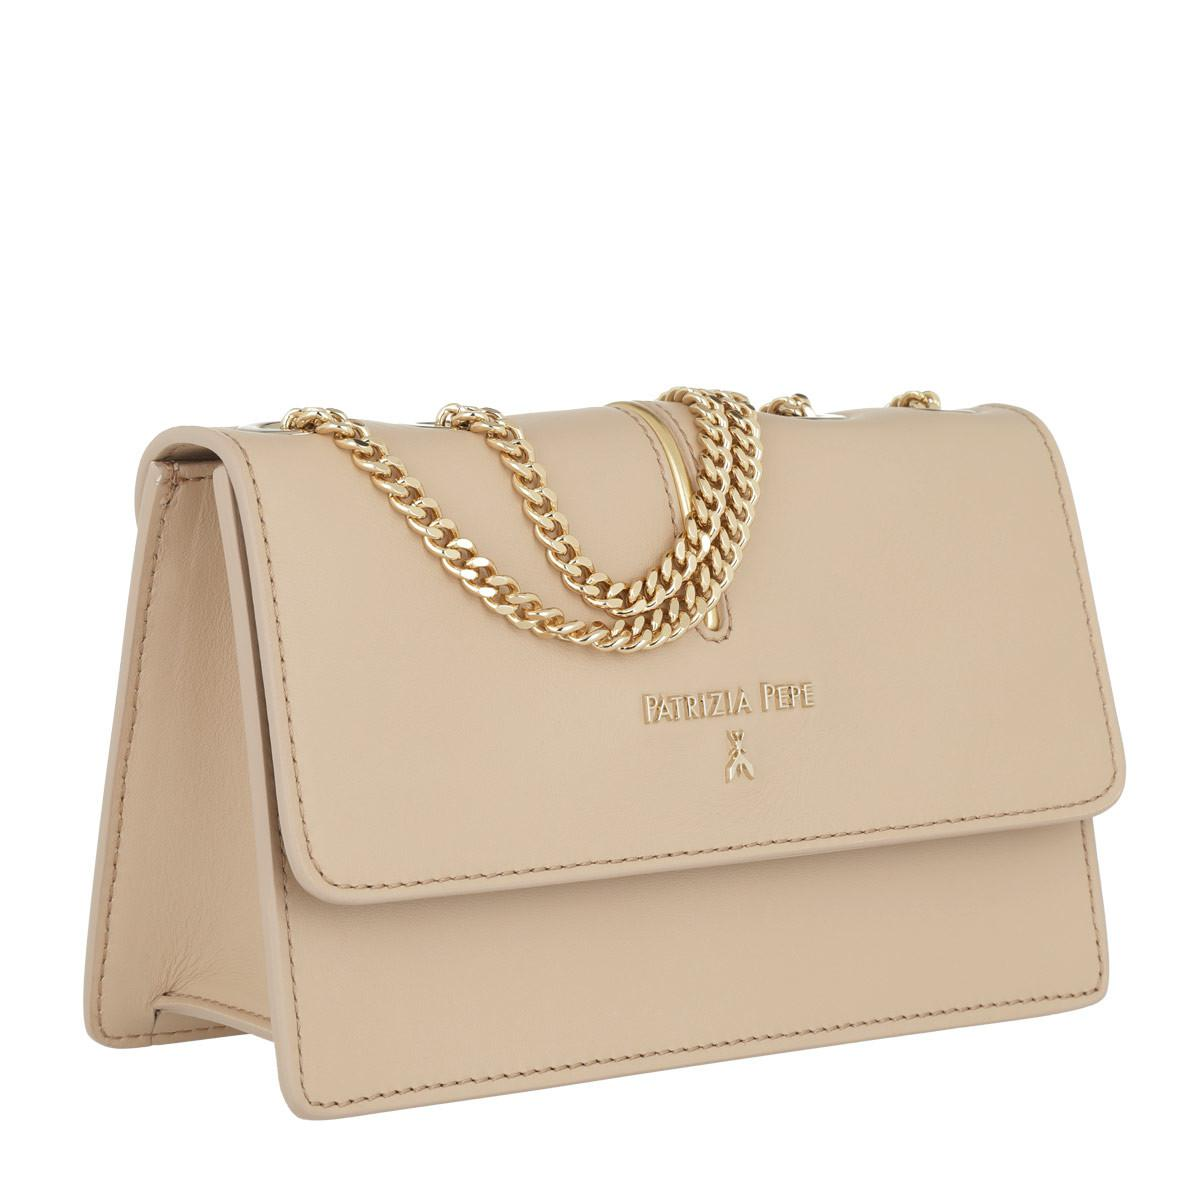 b87b83369e36 Patrizia Pepe - Natural Logo Chain Crossbody Bag Camel Beige - Lyst. View  fullscreen